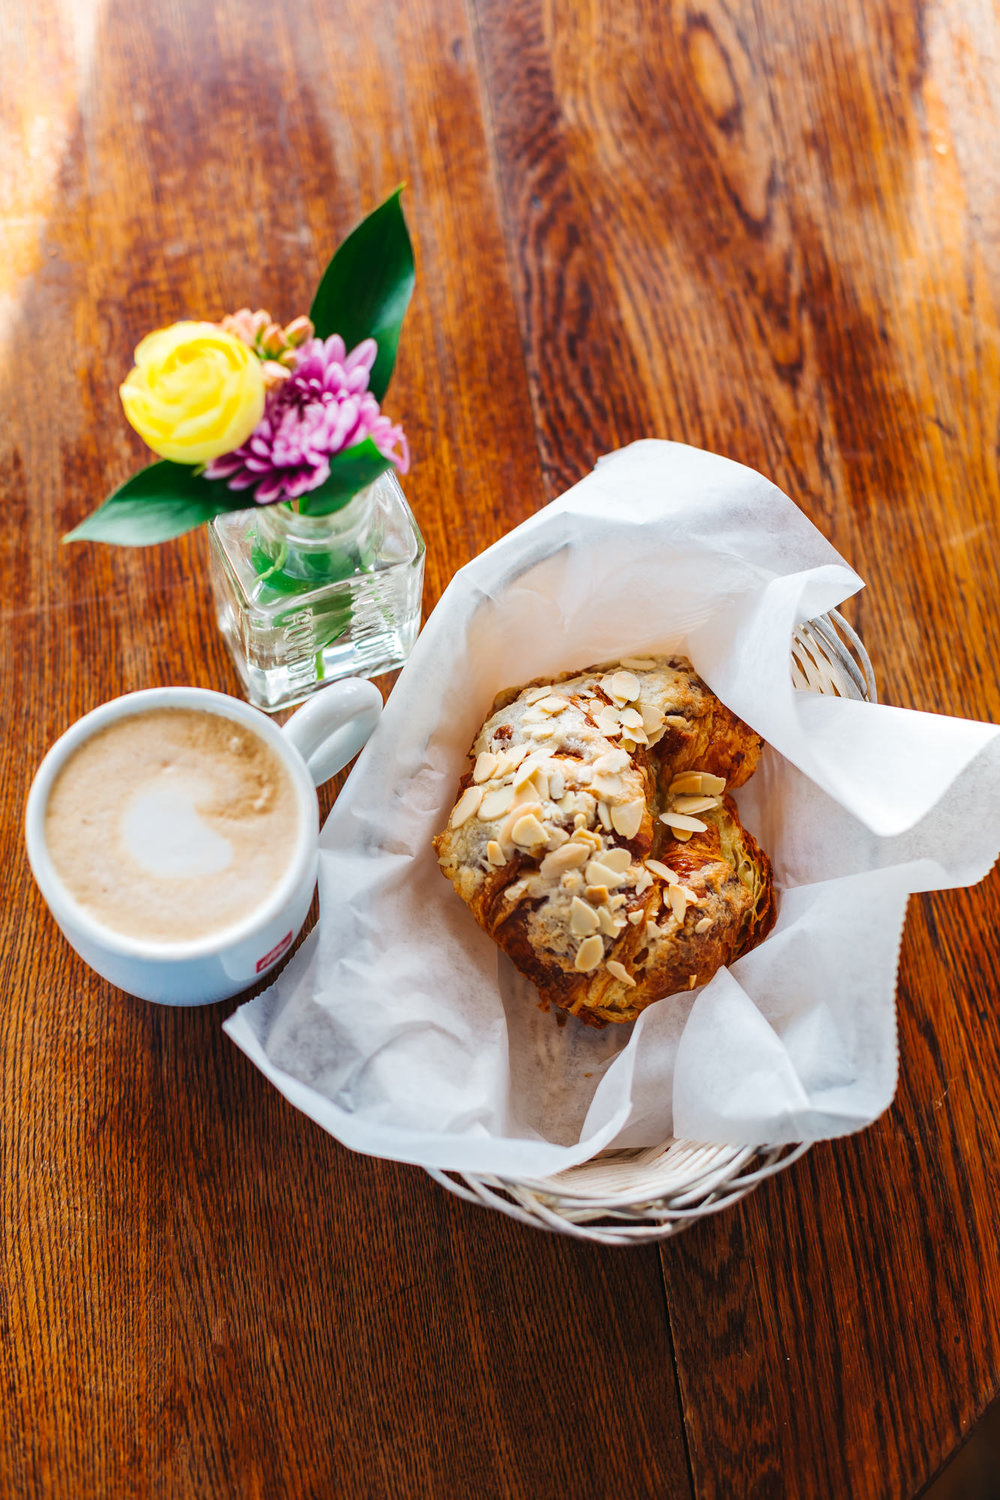 Delicious Almond Croissant and latte at Cafe Madeleine